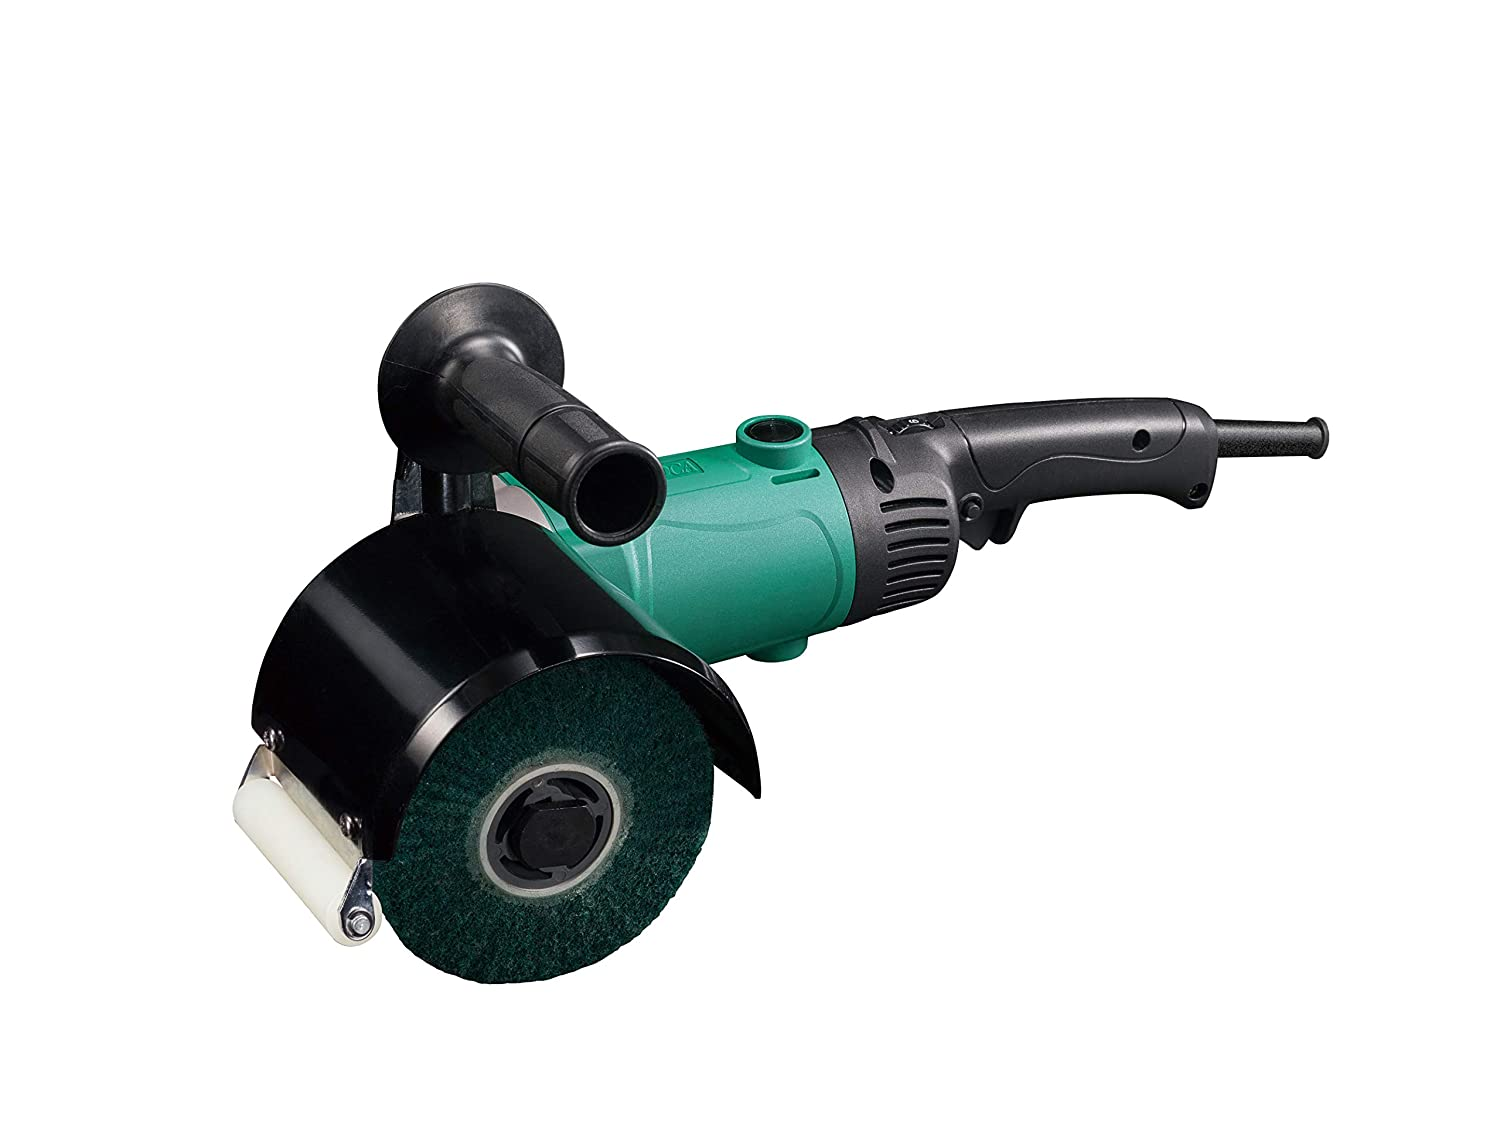 DCA ASN100 1400W Grinding Polisher (Green, 120 x 100 mm)